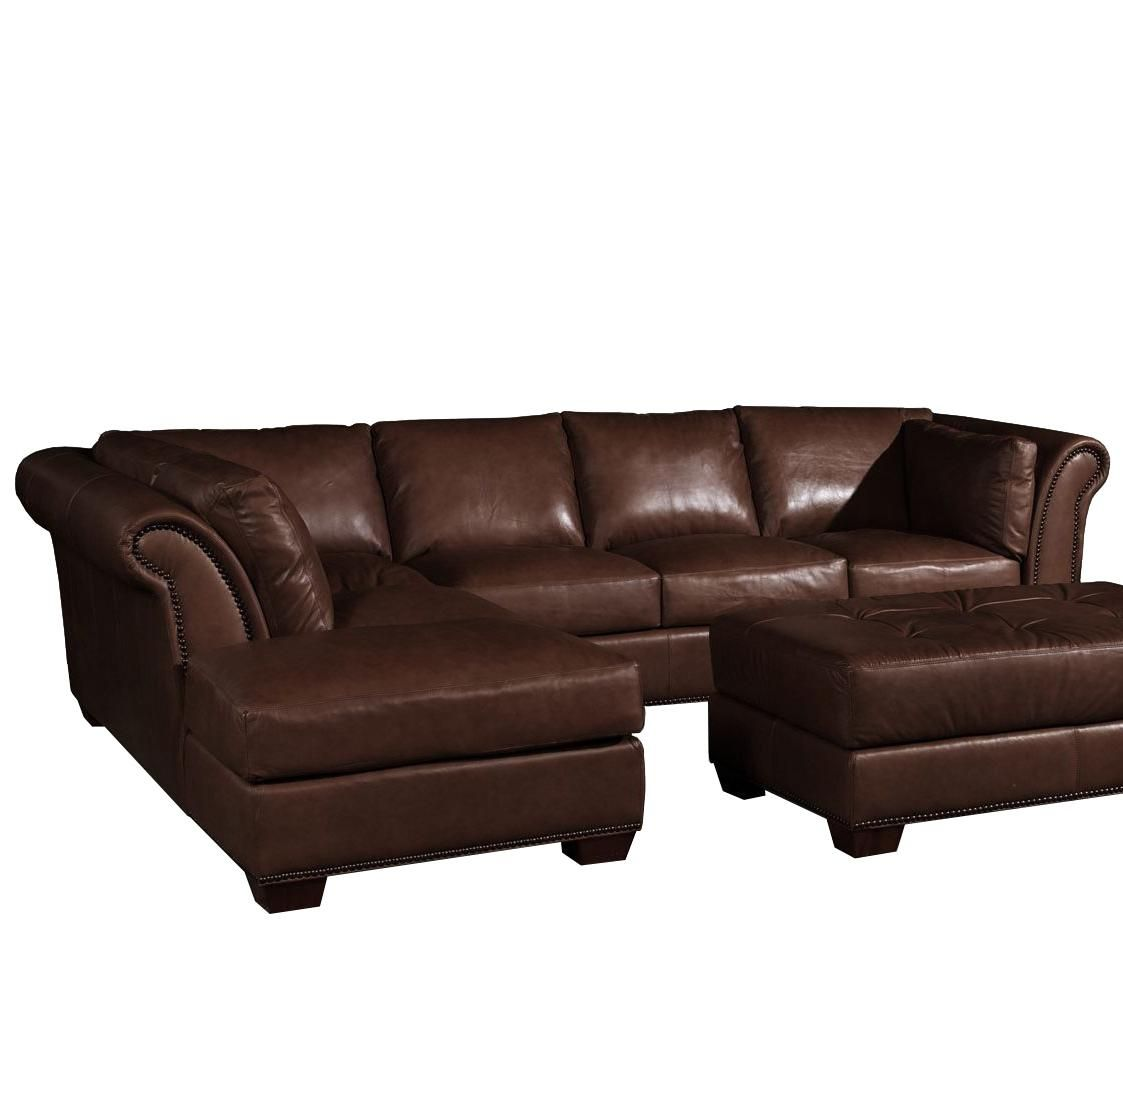 USA Premium Leather 8651 Traditional Leather Sectional Sofa   Olindeu0027s  Furniture   Sofa Sectional Baton Rouge